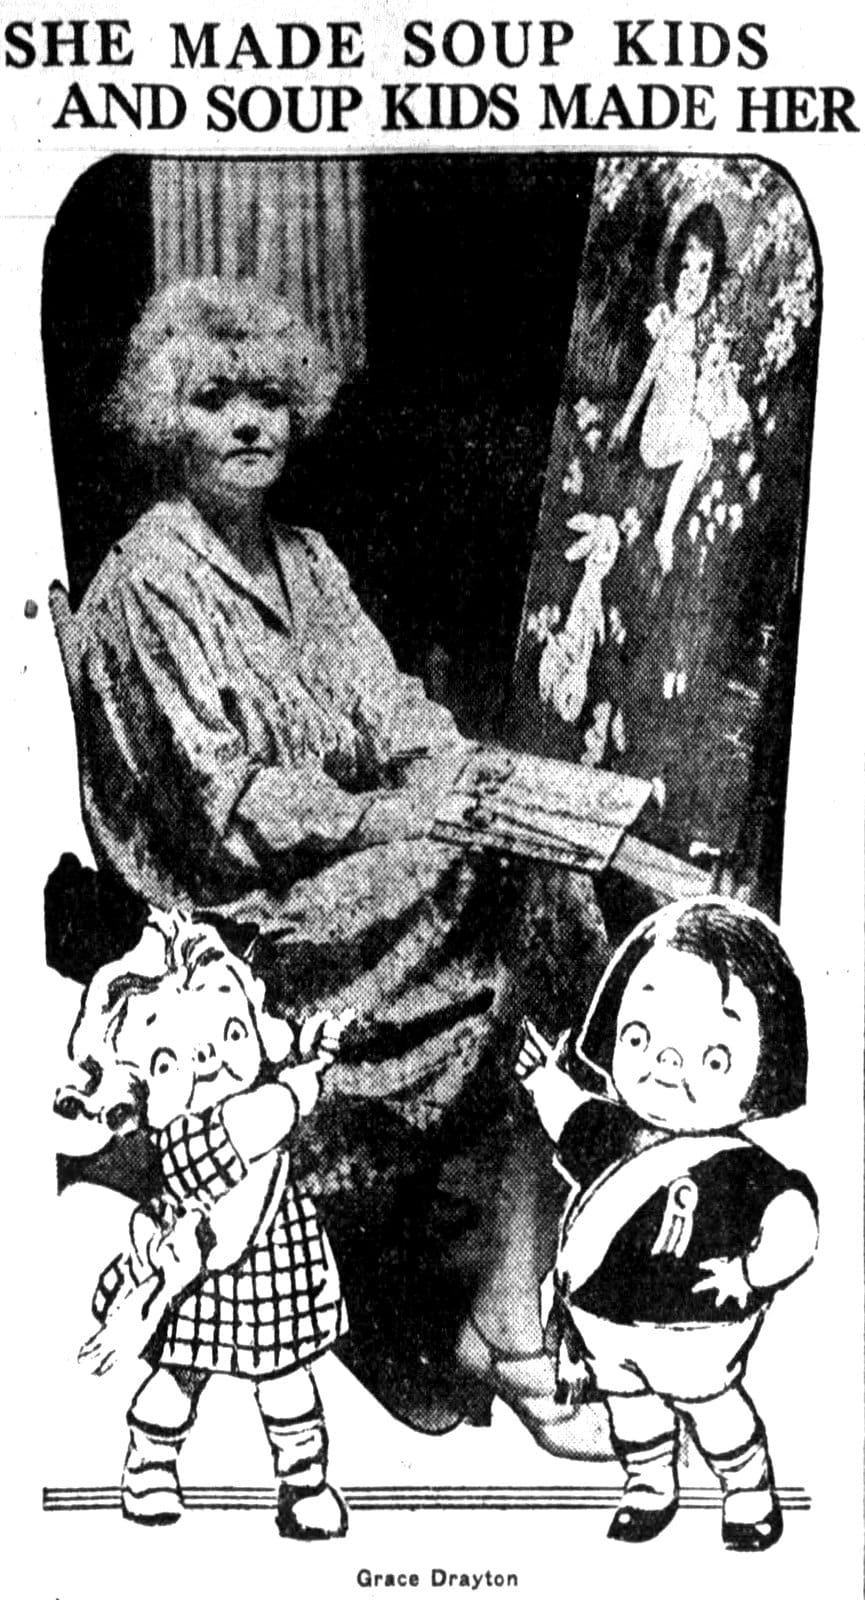 Artist Grace Drayton and Campbell's Soup Kids (1926)